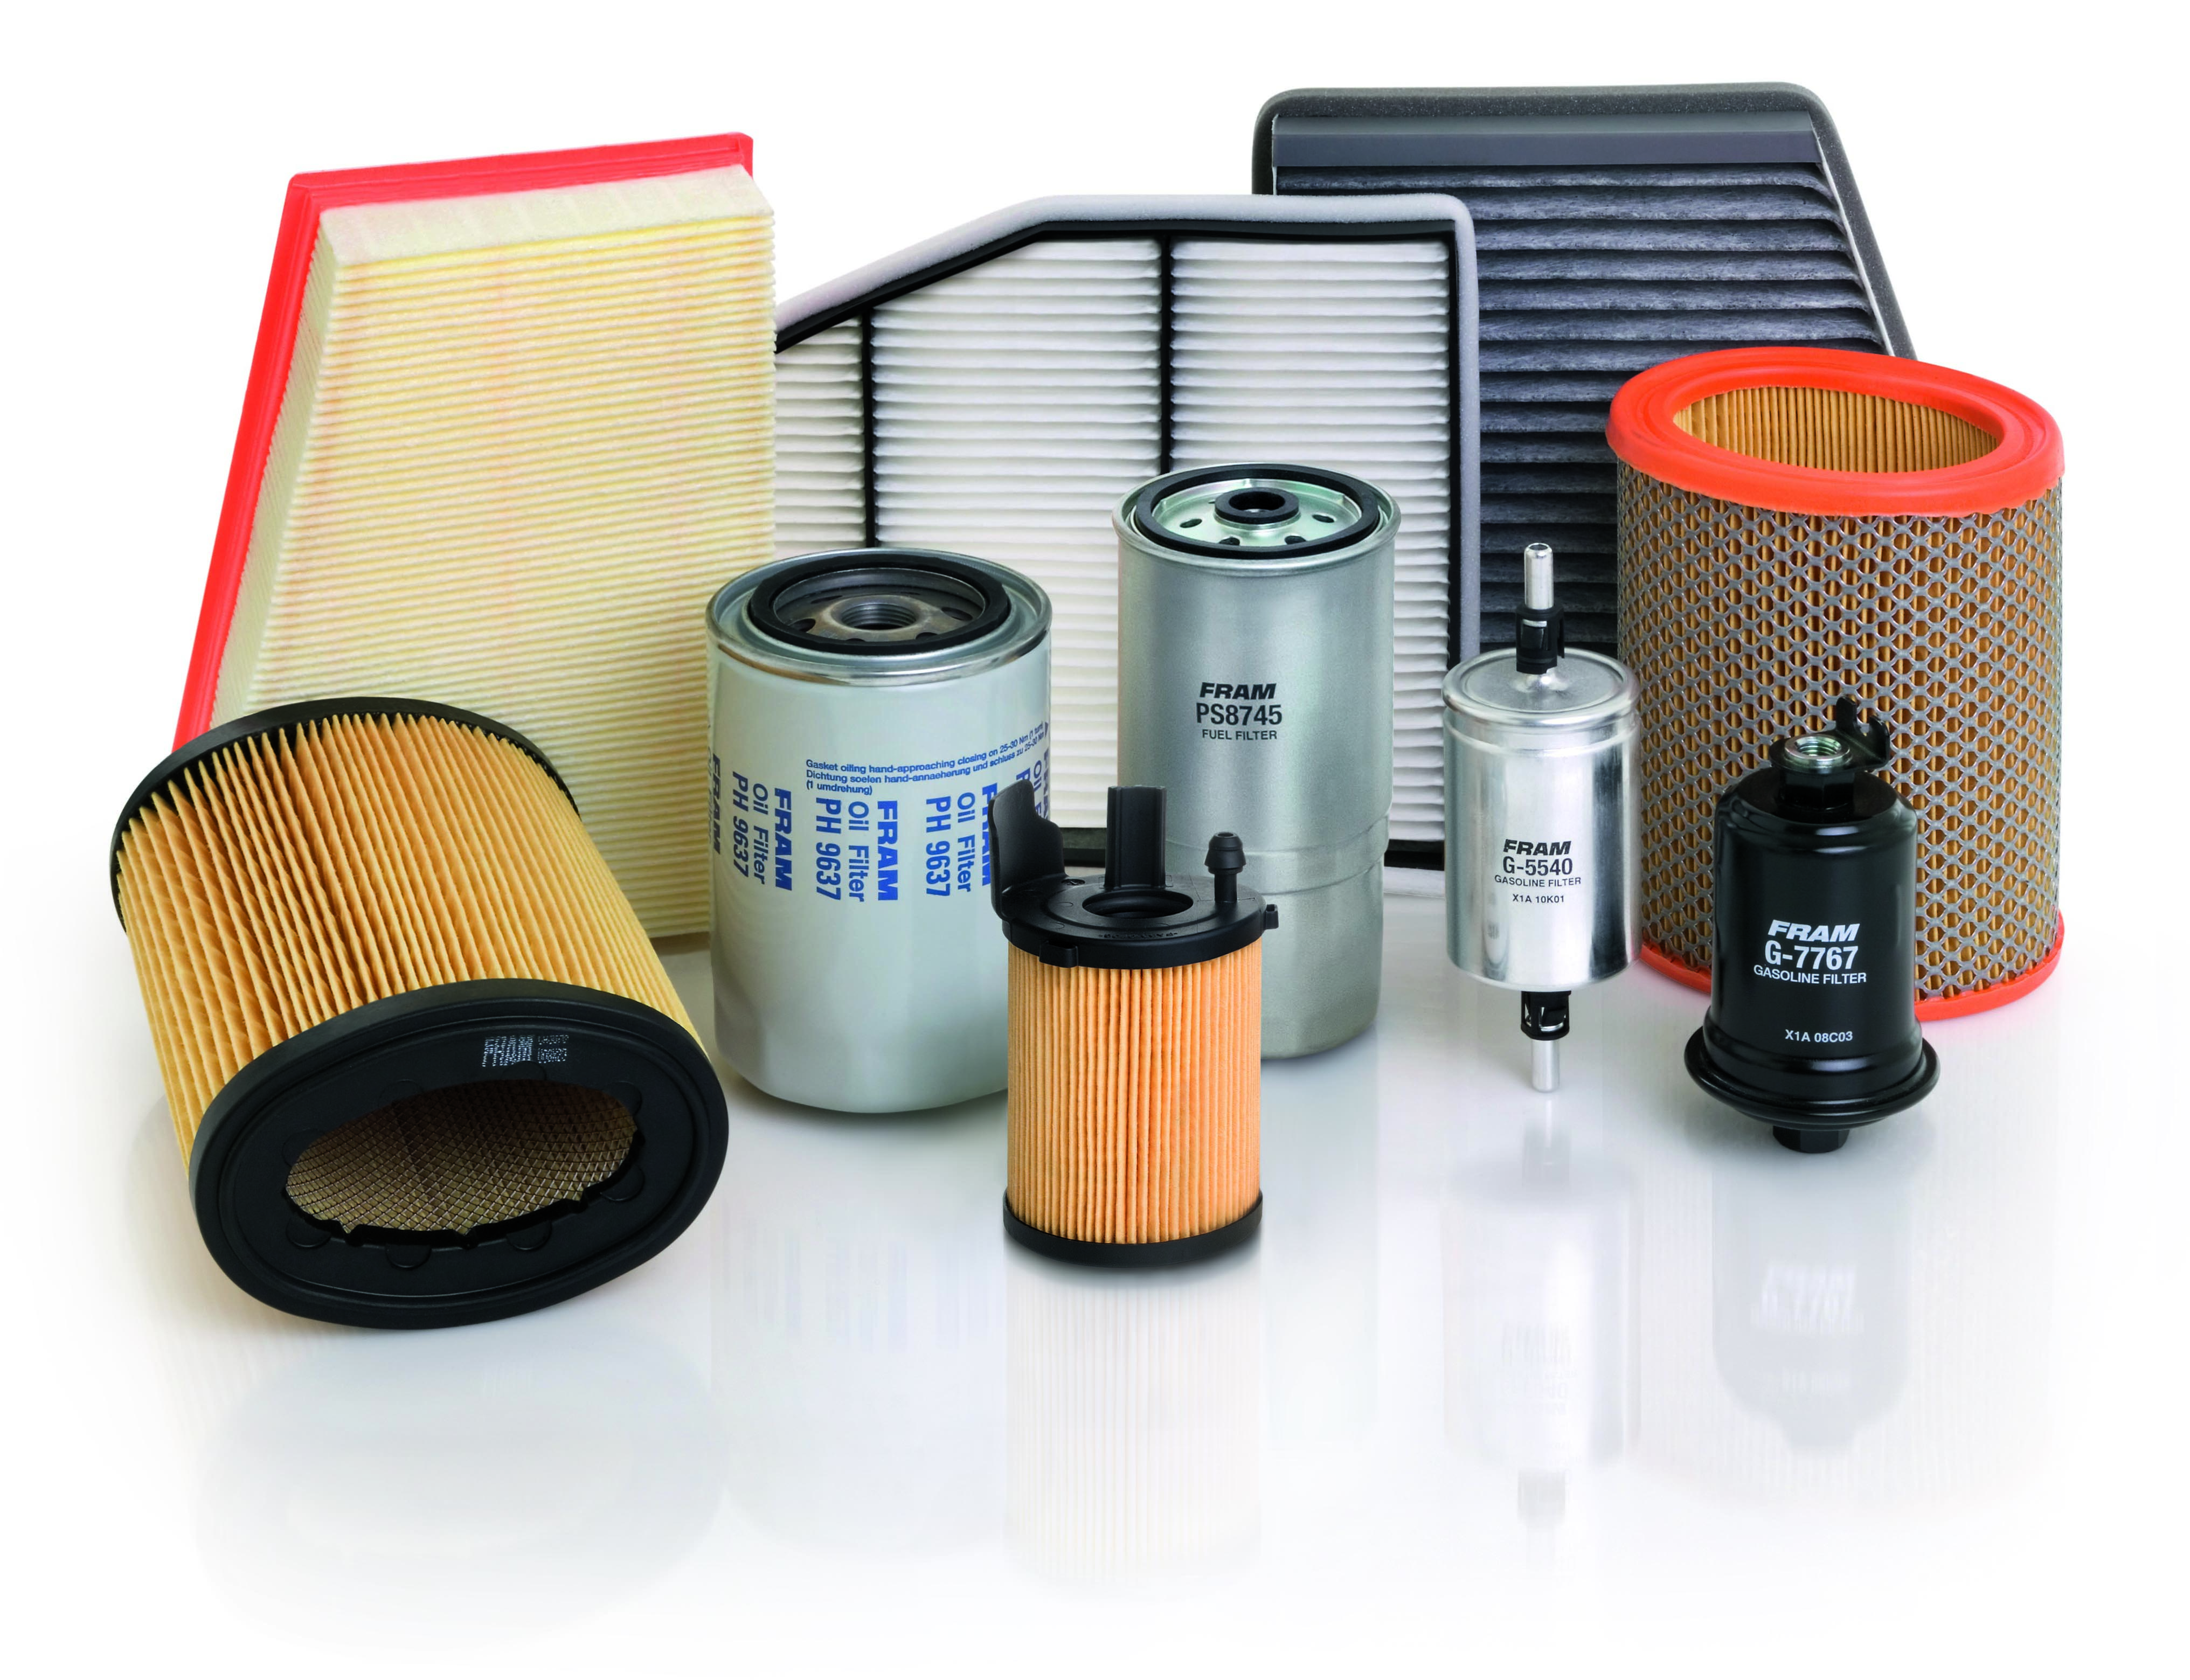 Ecp To Stock Fram Filters Cat Magazine Performance Fuel Filter The Latter Will Products Under Brand From Start Of July With Full Range Light Vehicle